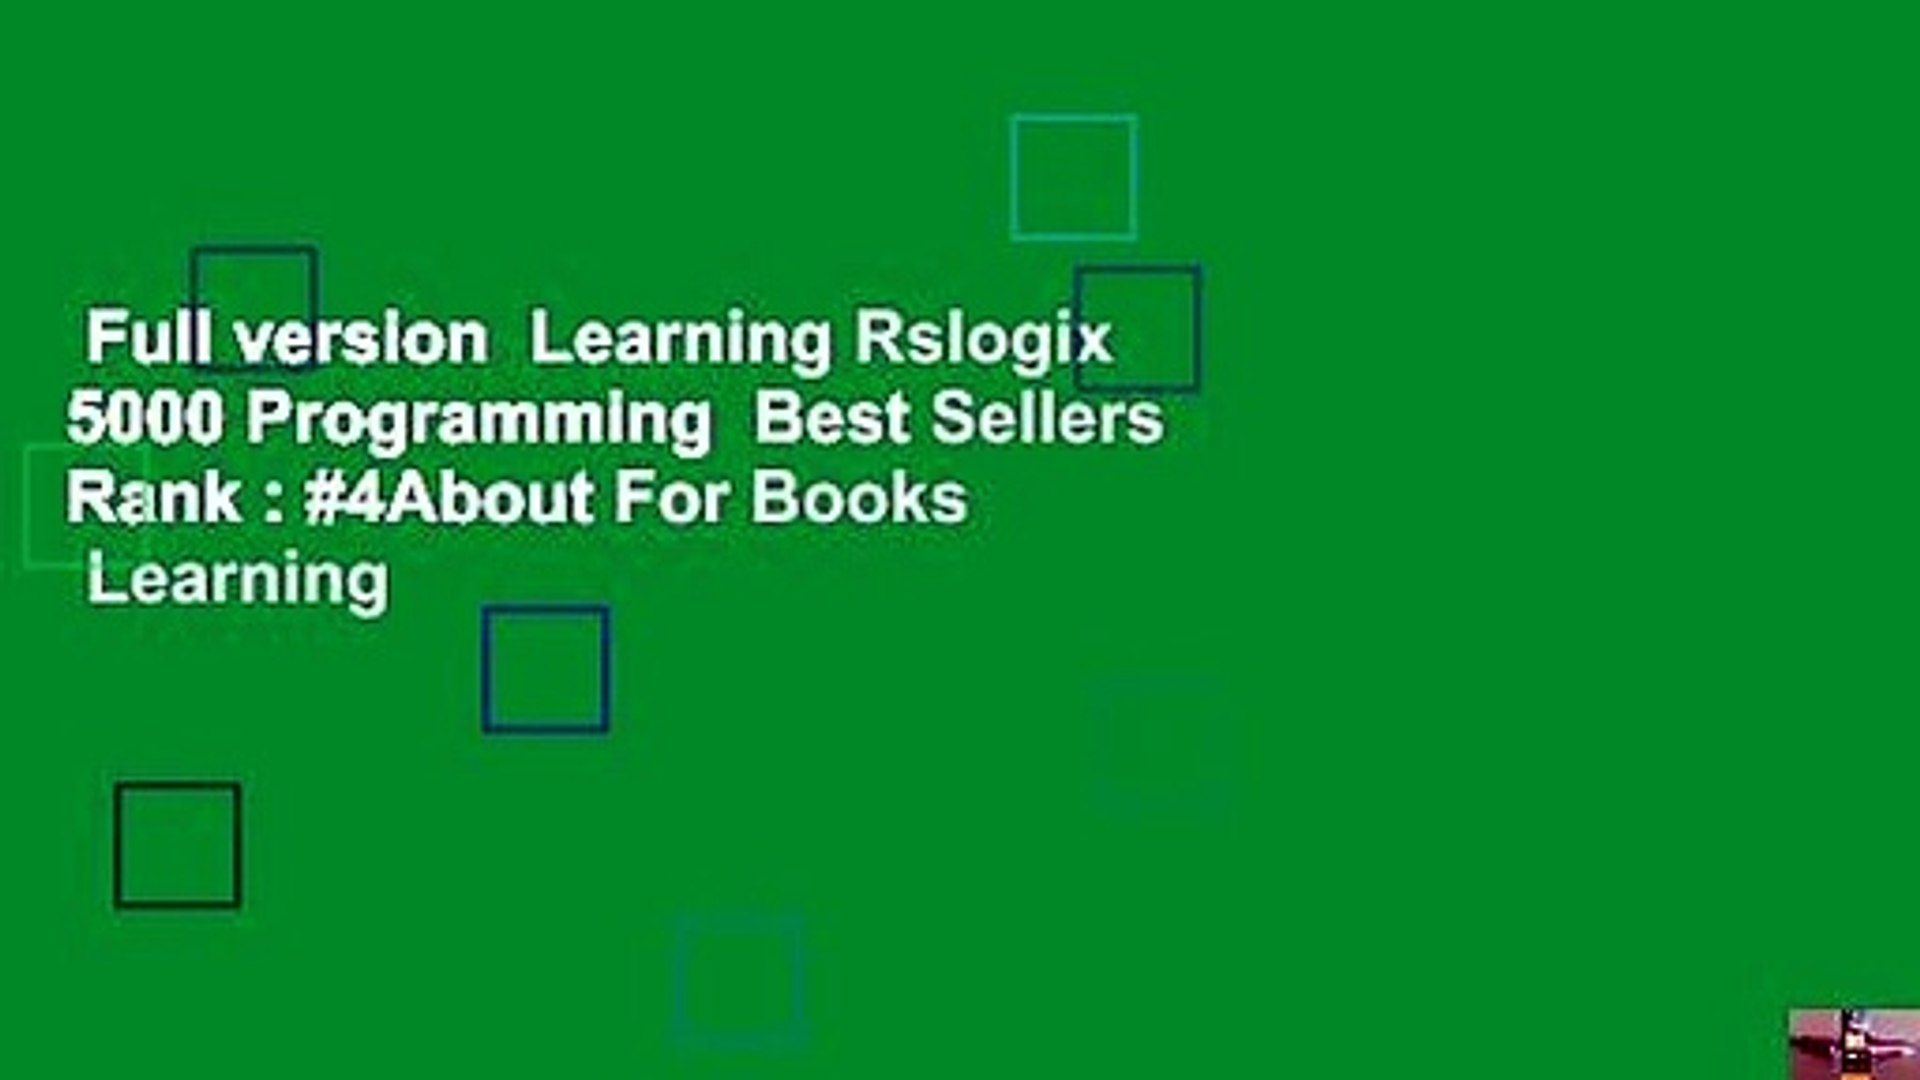 Full version Learning Rslogix 5000 Programming Best Sellers Rank : #4About  For Books Learning